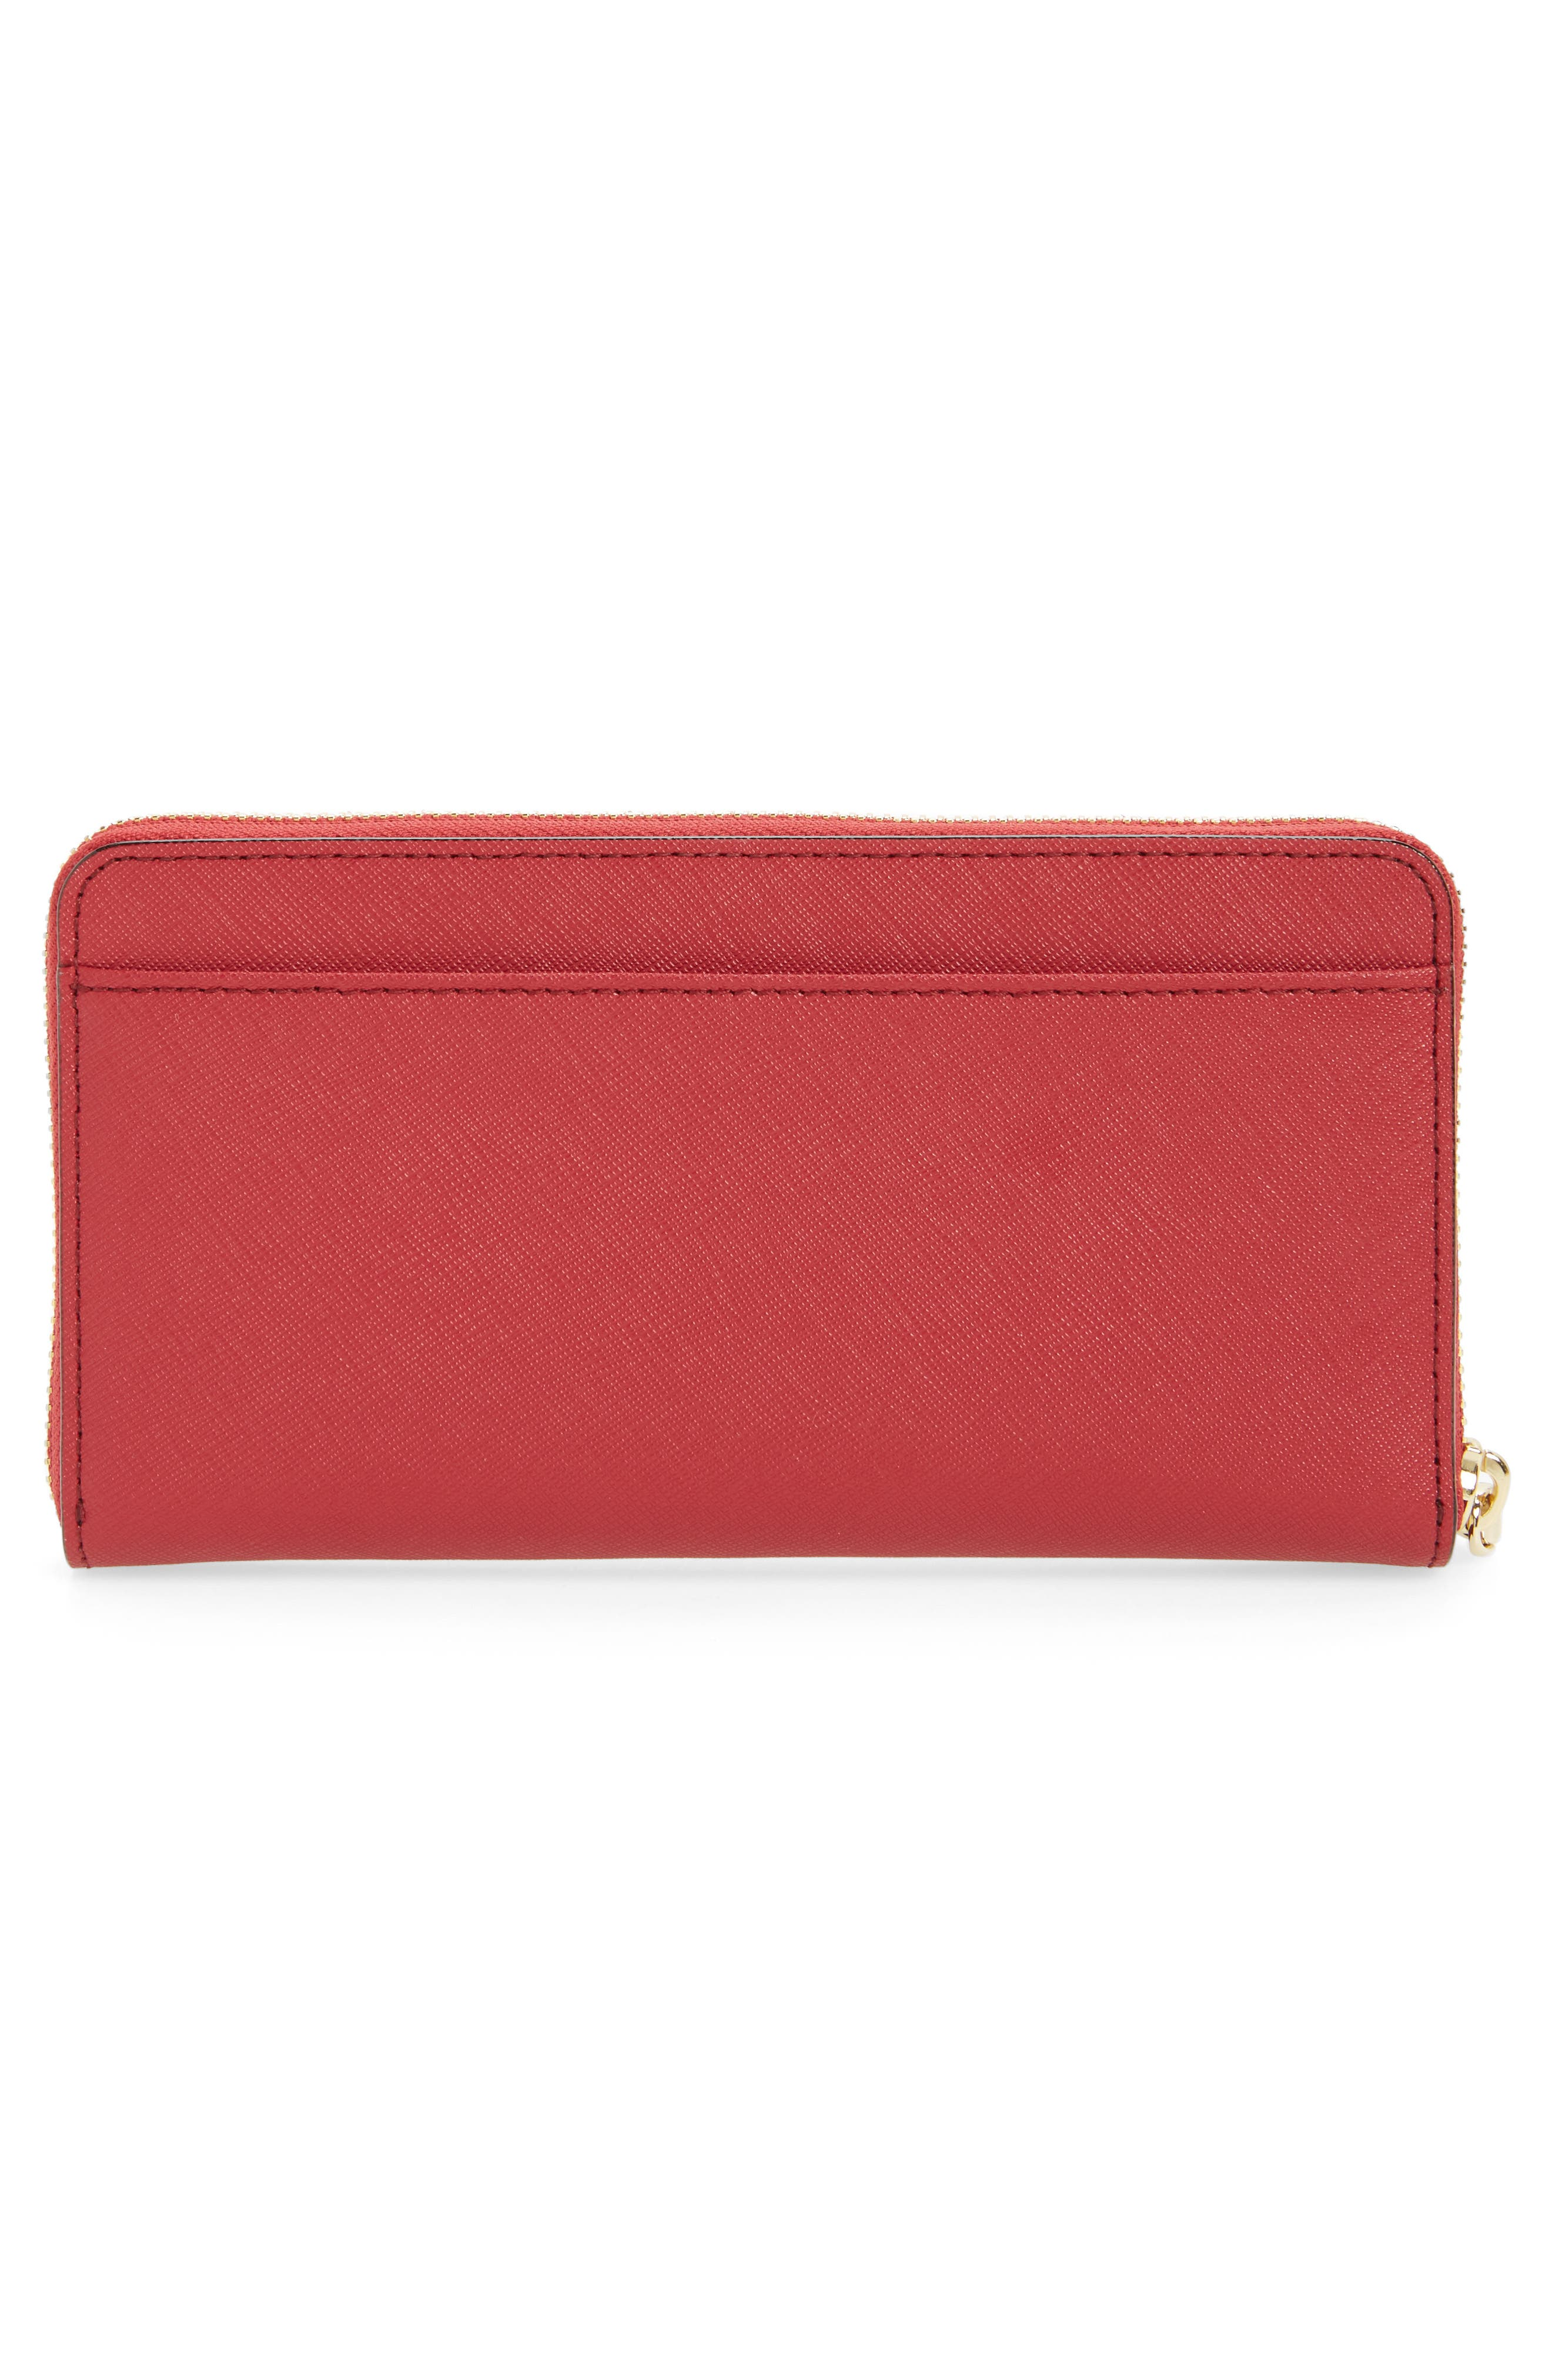 'cameron street - lacey' leather wallet,                             Alternate thumbnail 45, color,